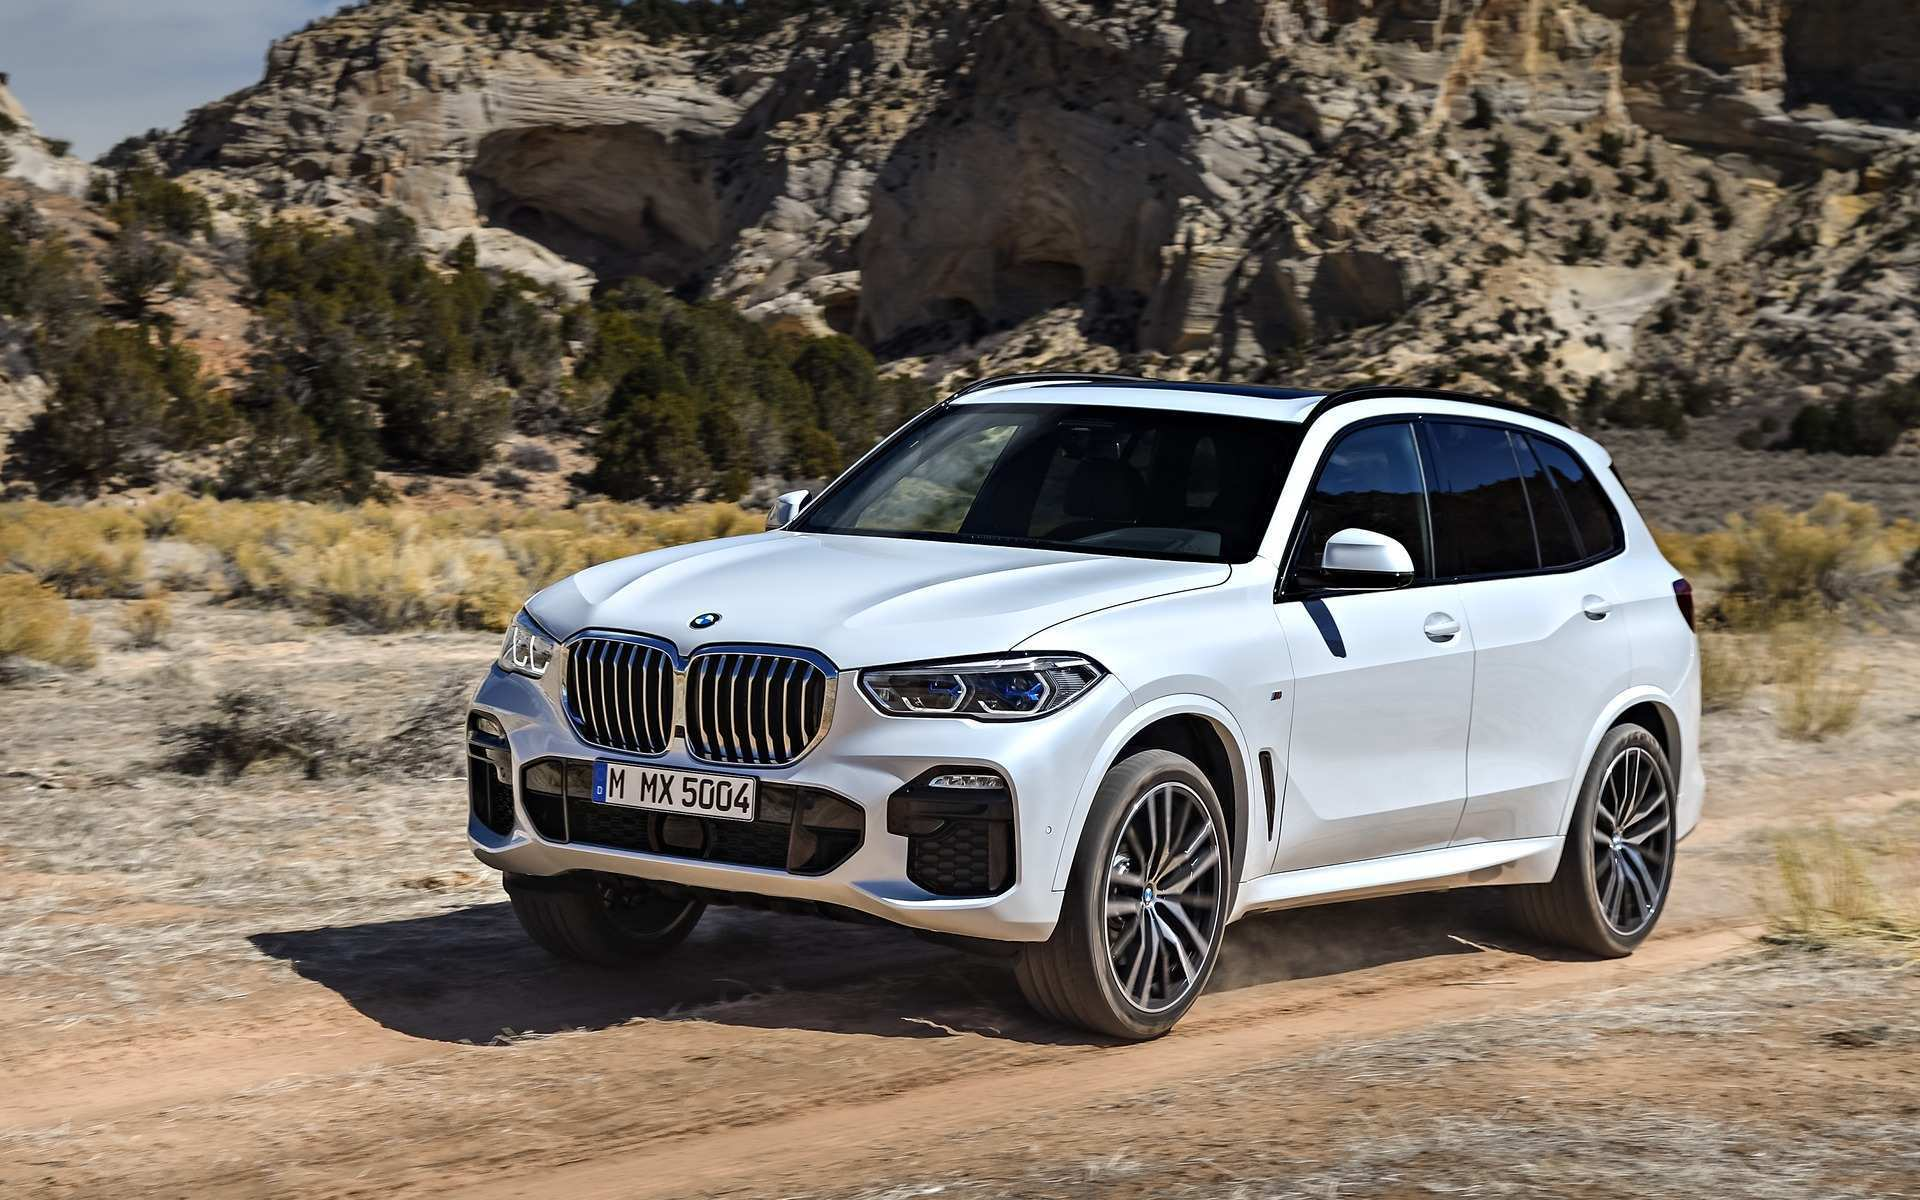 52 New Bmw X5 2019 Redesign and Concept for Bmw X5 2019